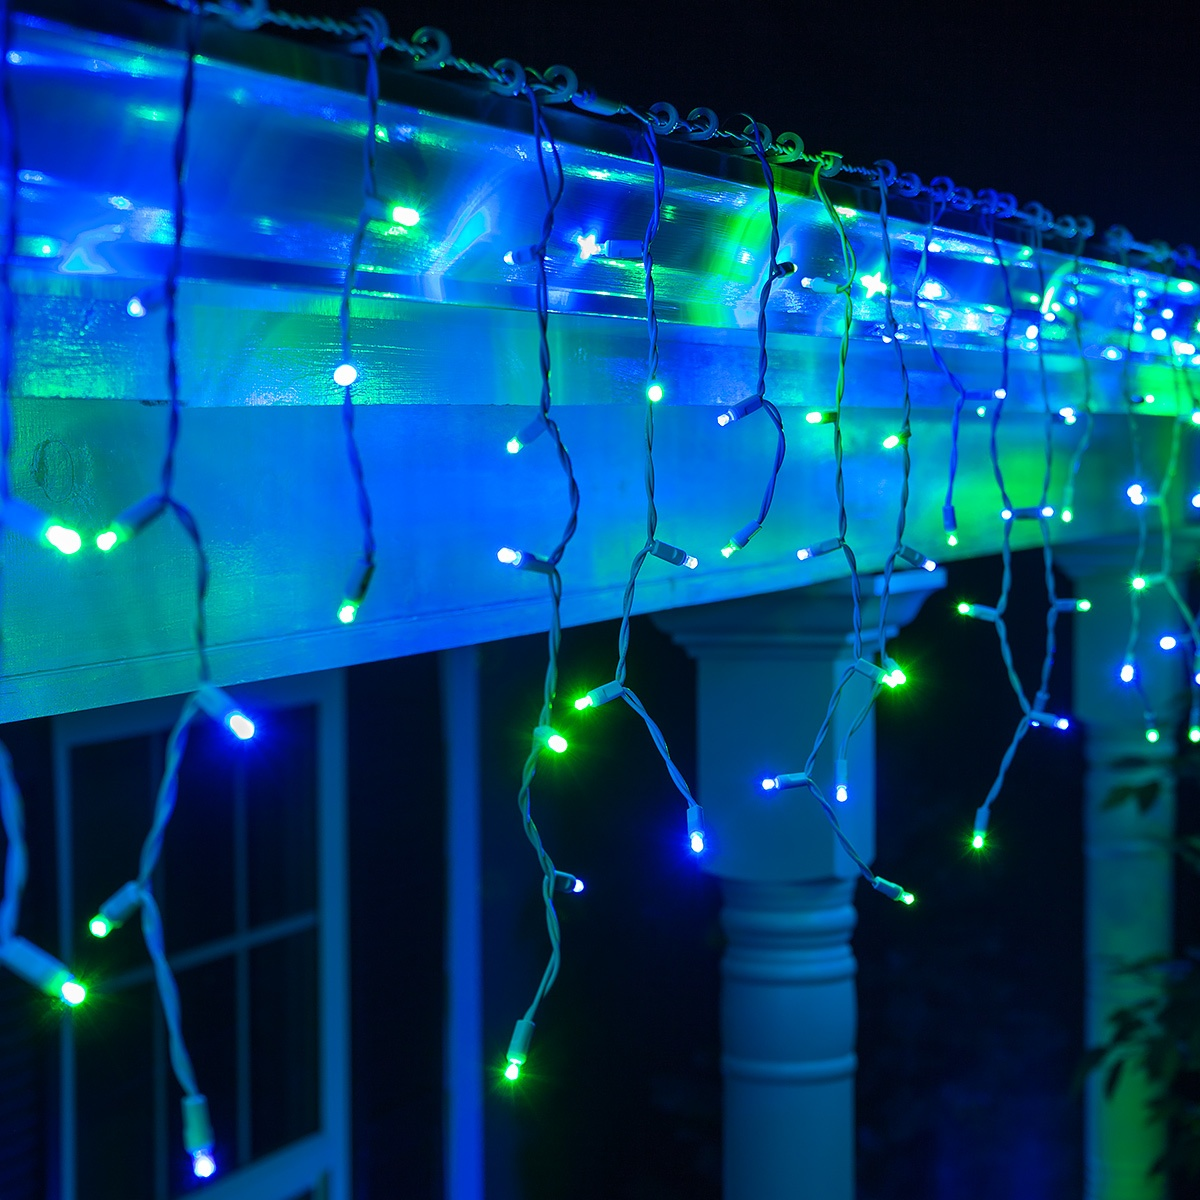 70 5mm led icicle lights bluegreen white wire yard envy